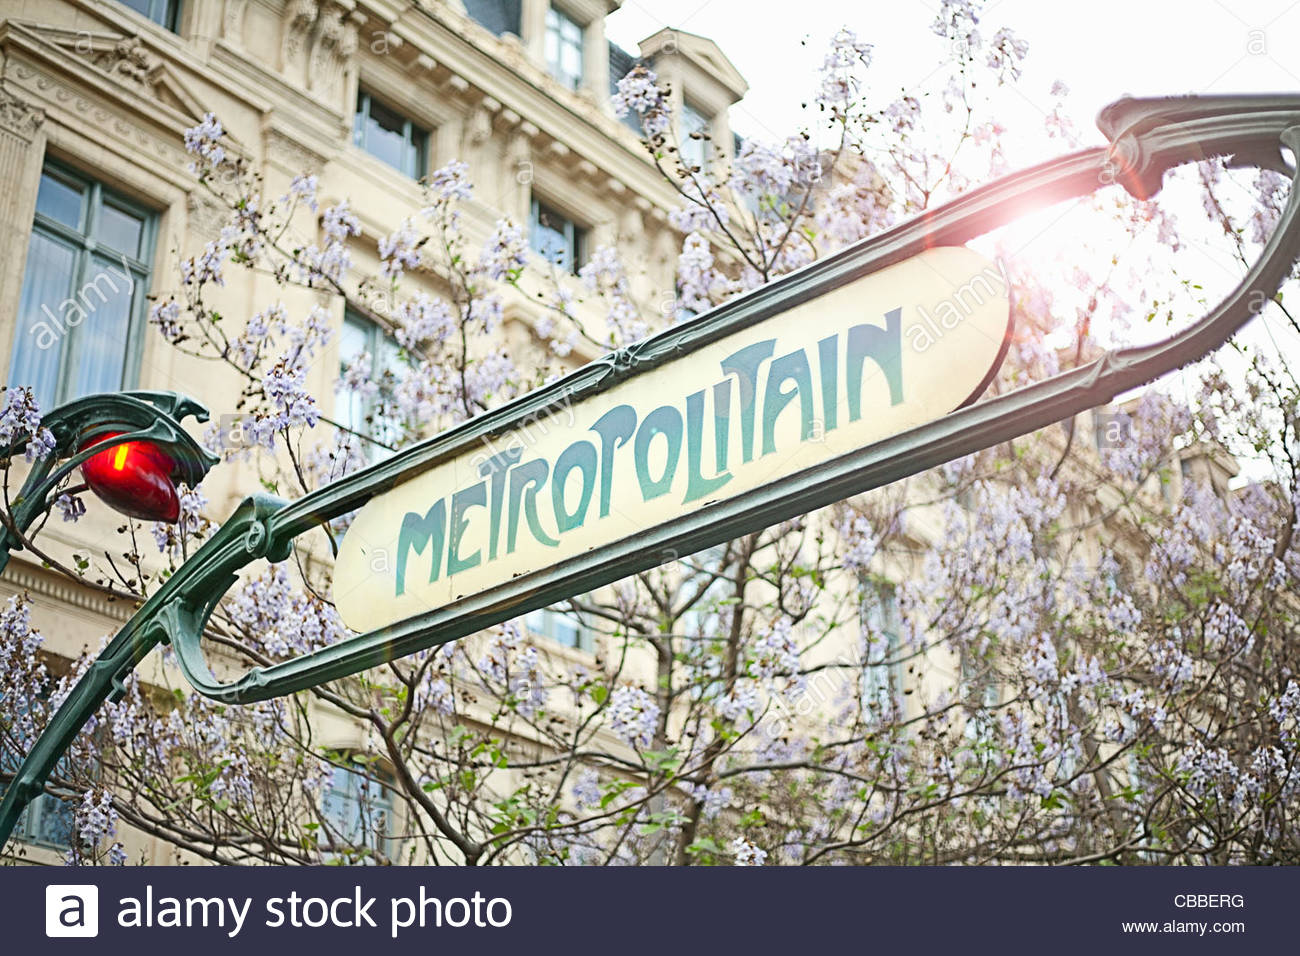 Metro sign in Paris - Stock Image